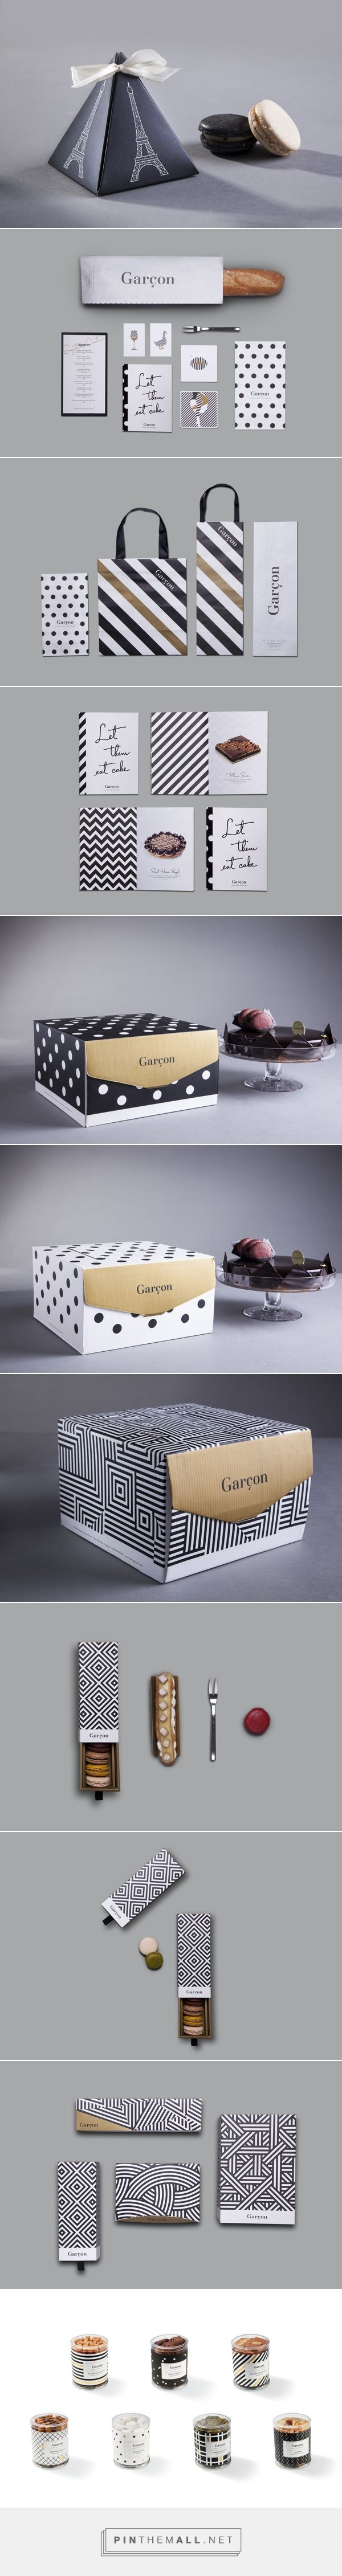 Garçon on Behance by Brownfox Studio curated by Packaging Diva PD. Some great…